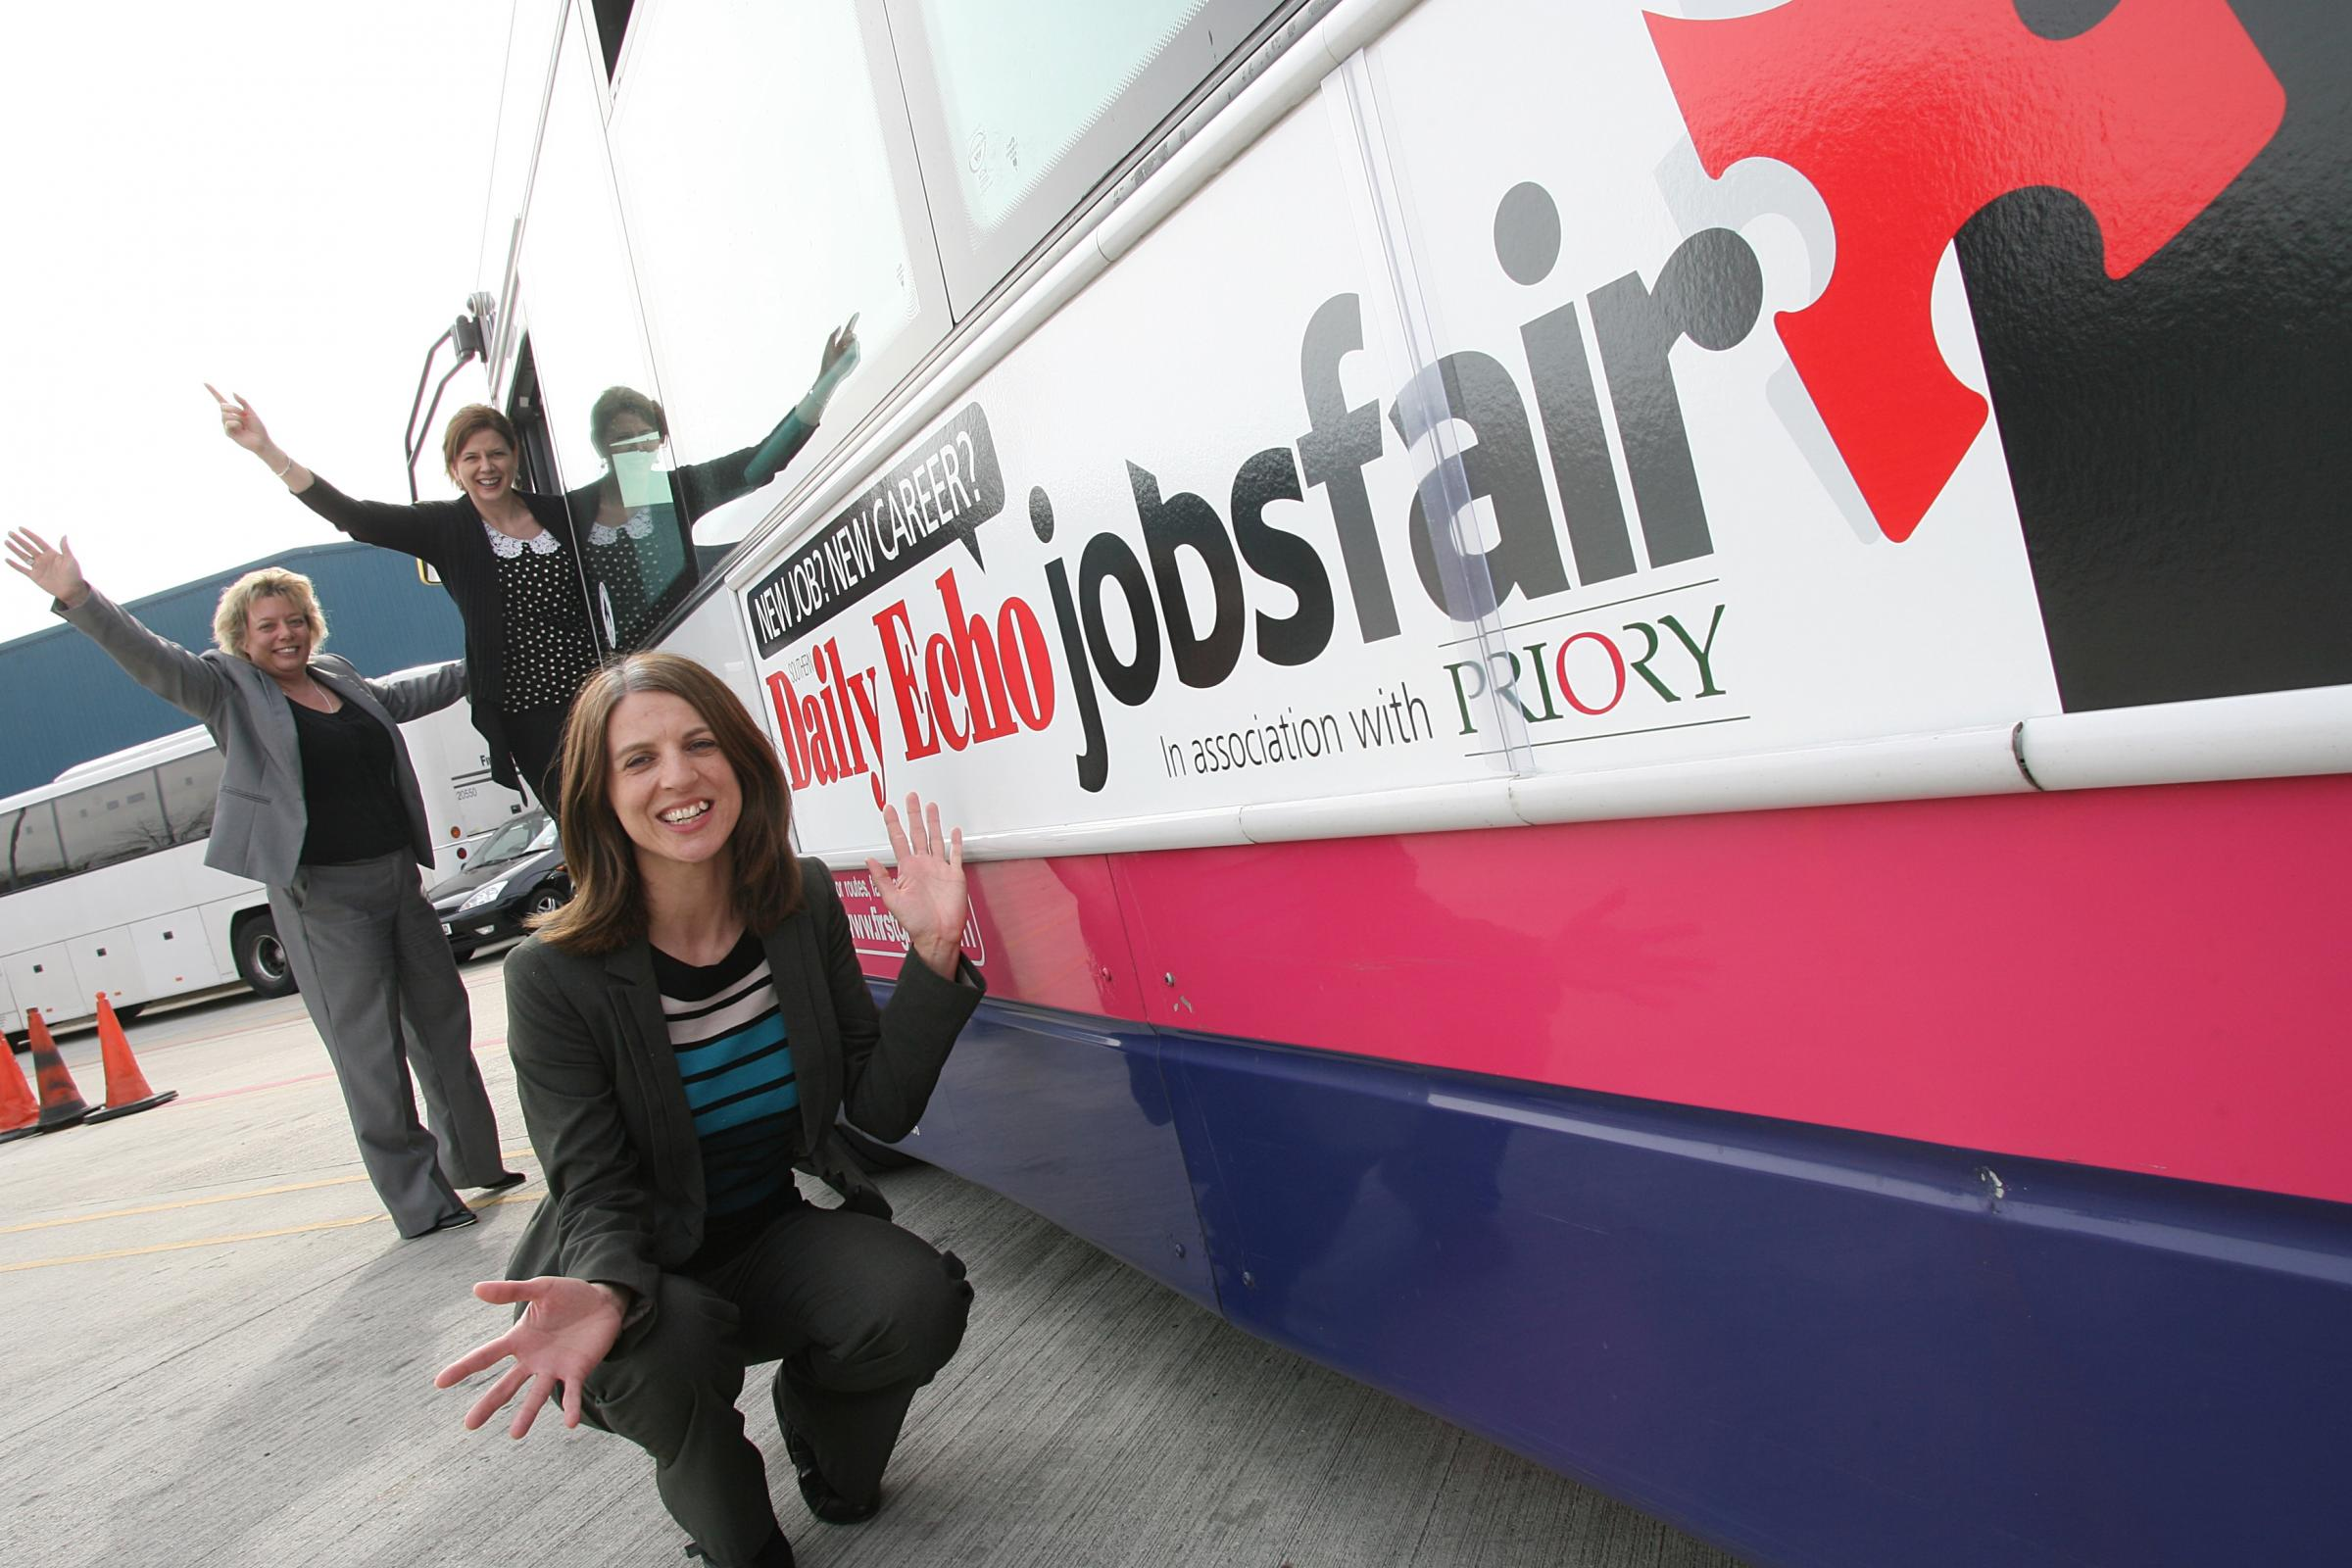 Jess Butts (front) with Kerry Darwin and Natalie Sprake alongside the Jobs Fair bus